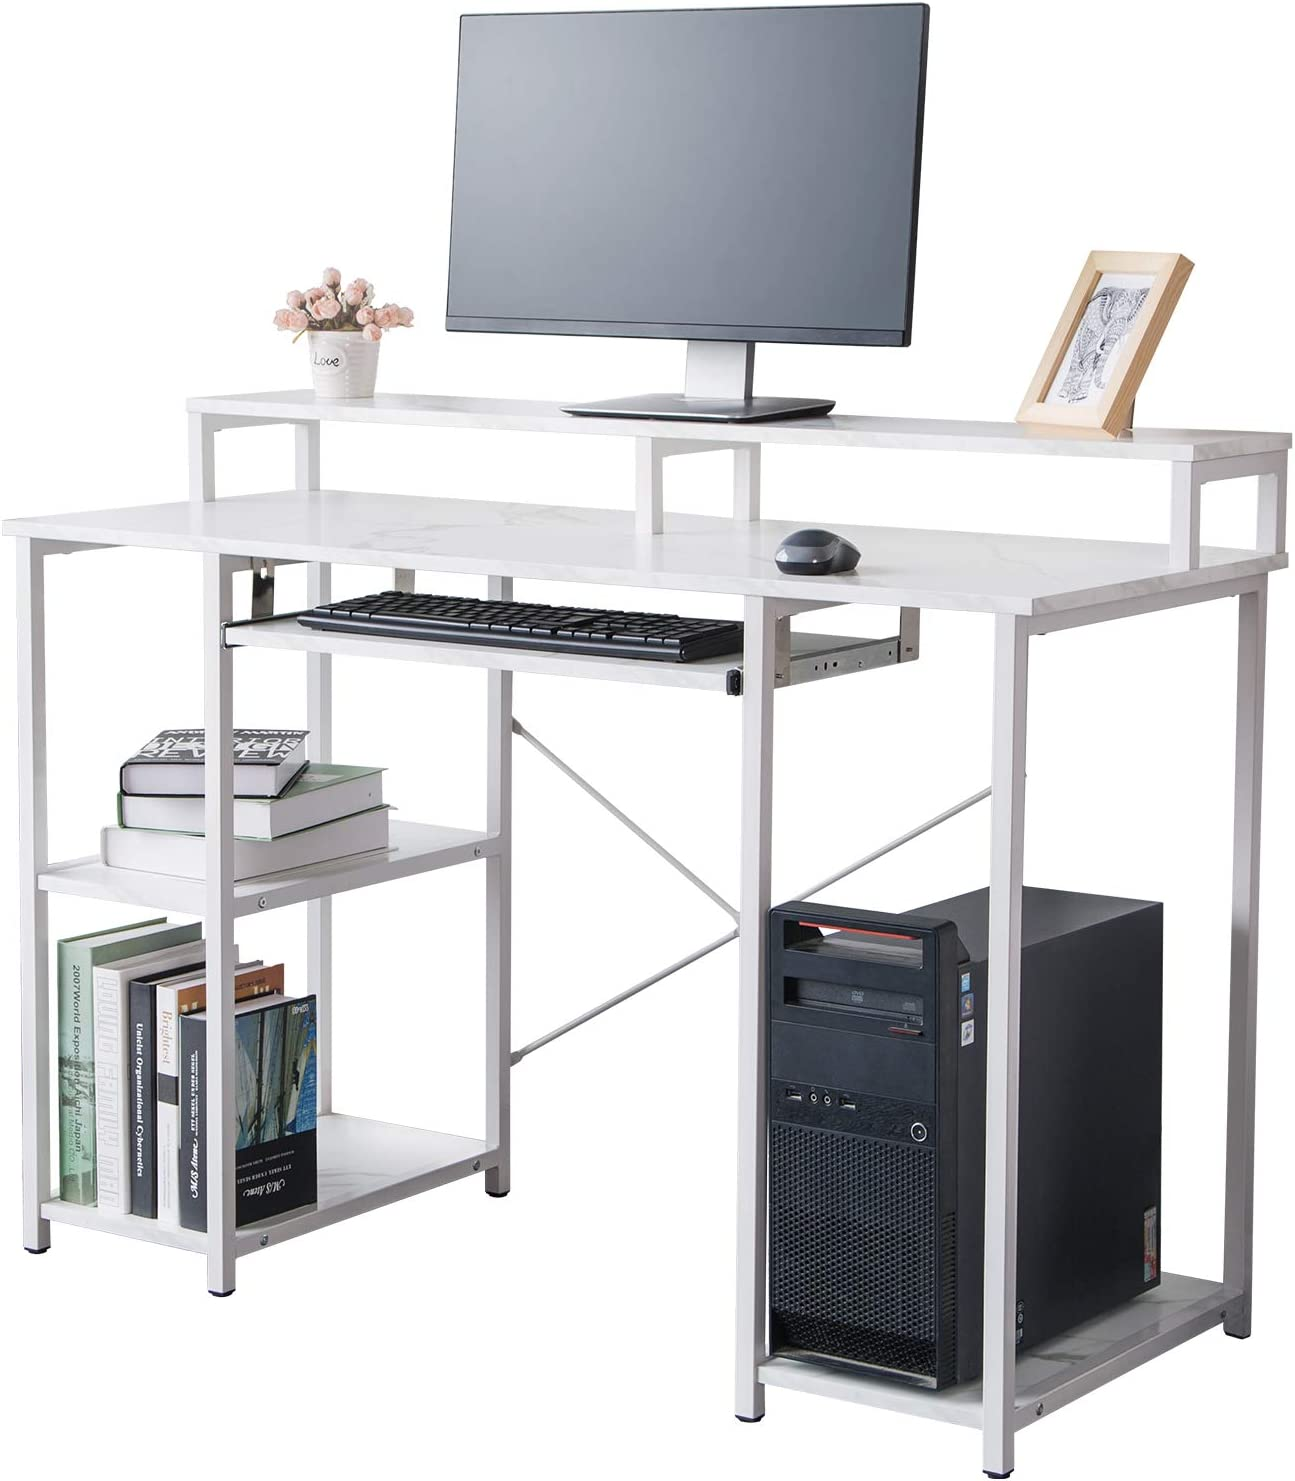 """TOPSKY Computer Desk with Storage Shelves/23.2"""" Keyboard Tray/Monitor Stand Study Table for Home Office(46.5inch,White Marble Texture)"""